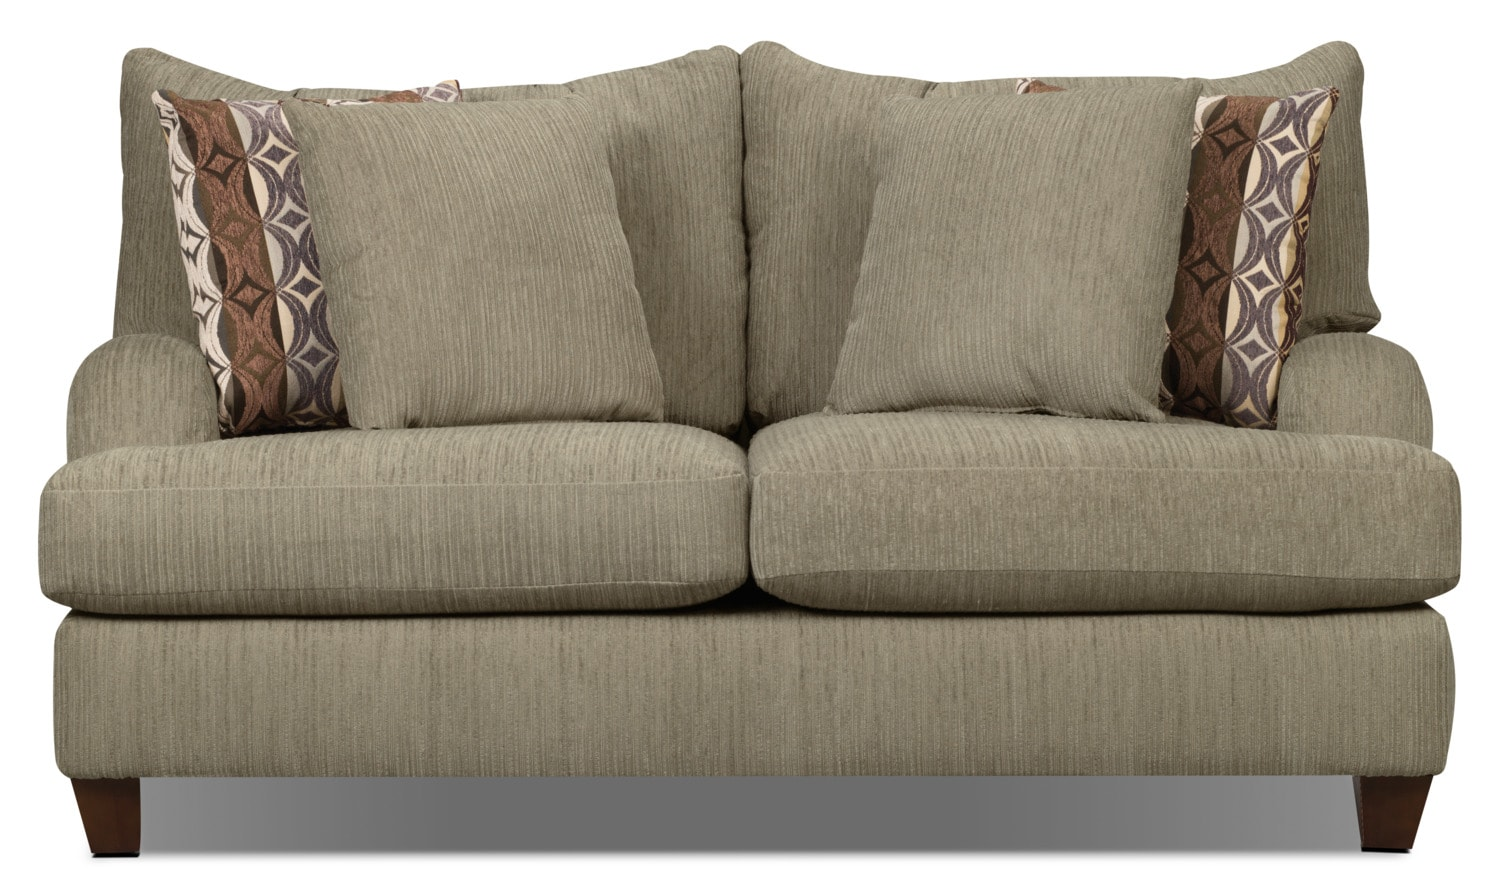 Putty Chenille Loveseat - Beige